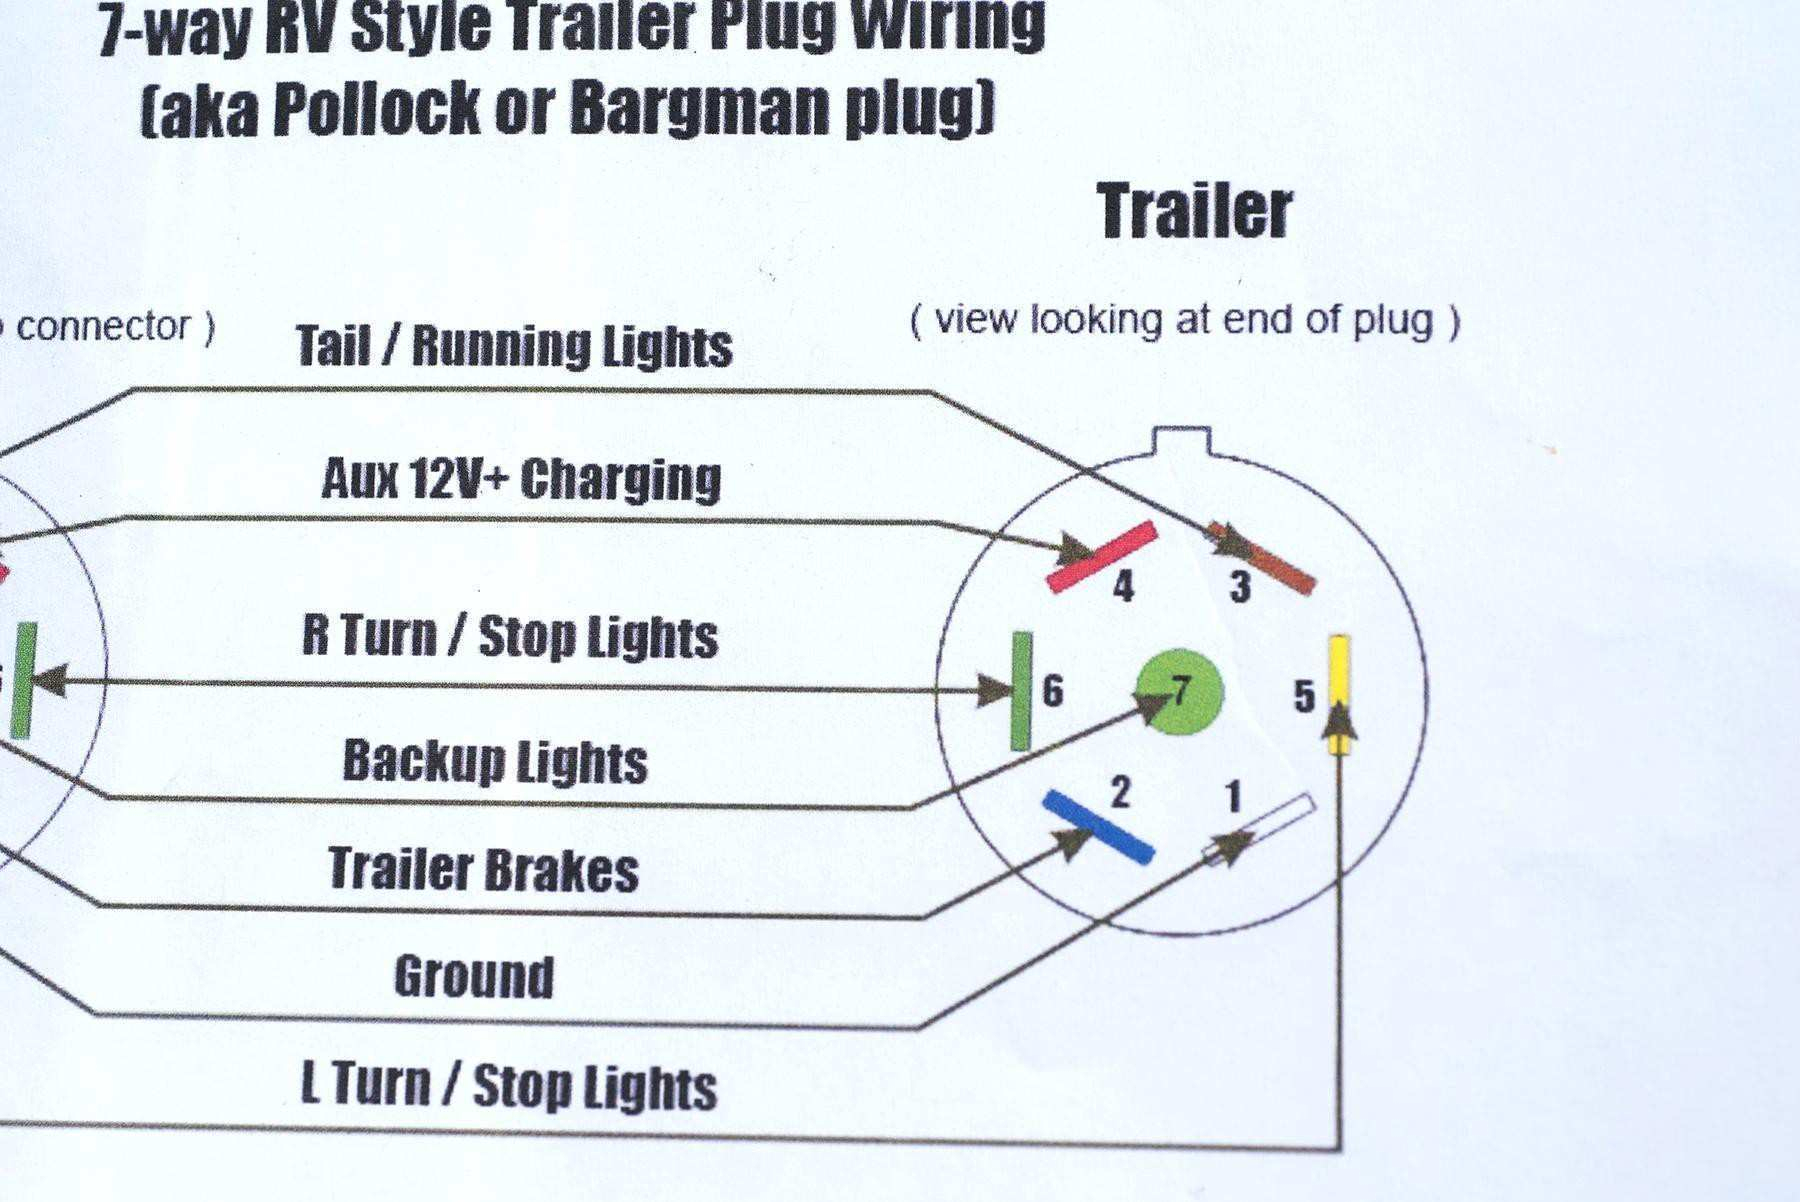 Used Gooseneck Trailers Wiring Harness On Boxes | Wiring Diagram - Gooseneck Trailer Wiring Diagram